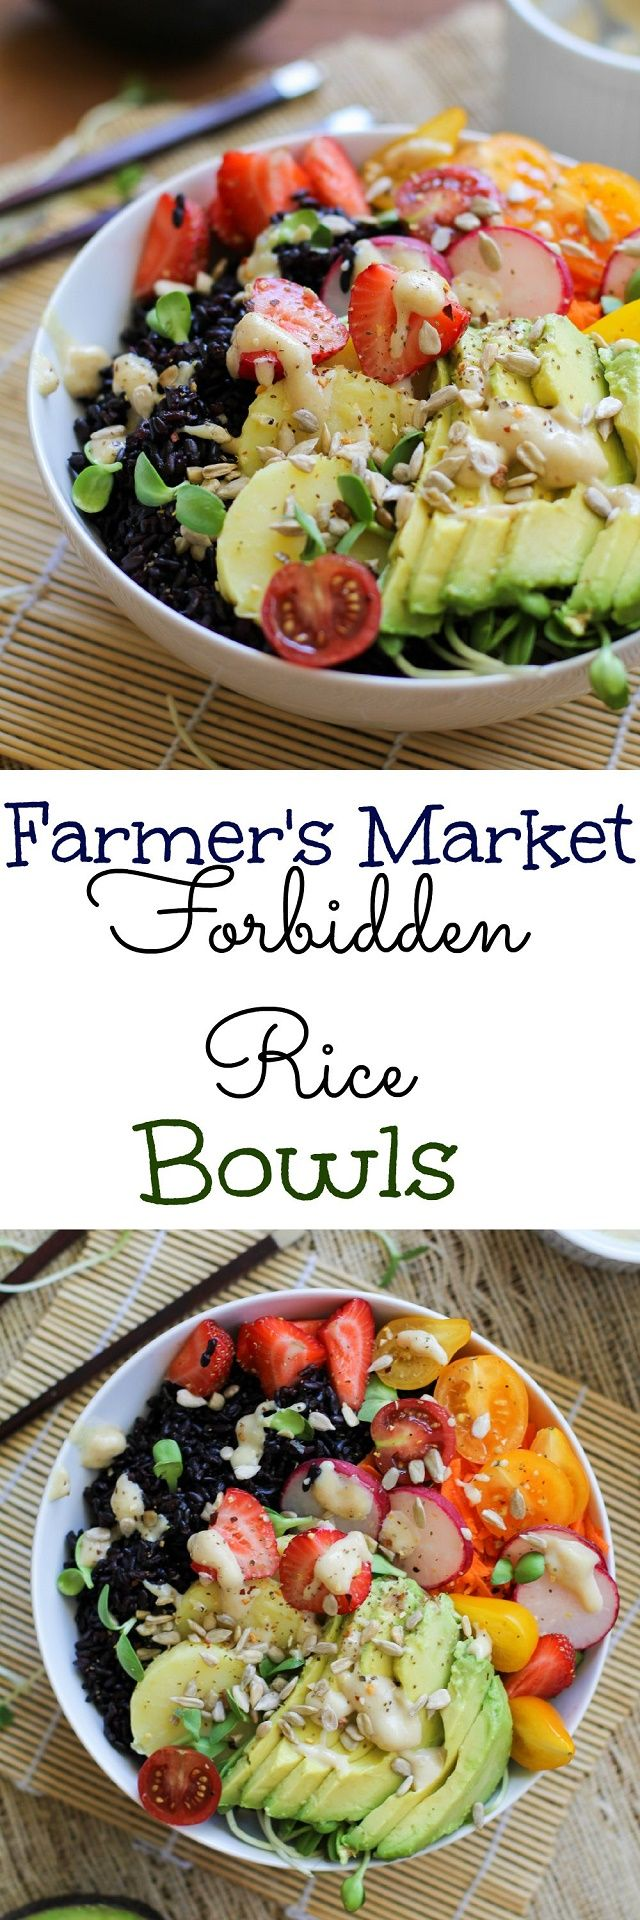 Farmer's Market Forbidden Rice Bowls with Tahini Apricot Sauce | TheRoastedRoot.net